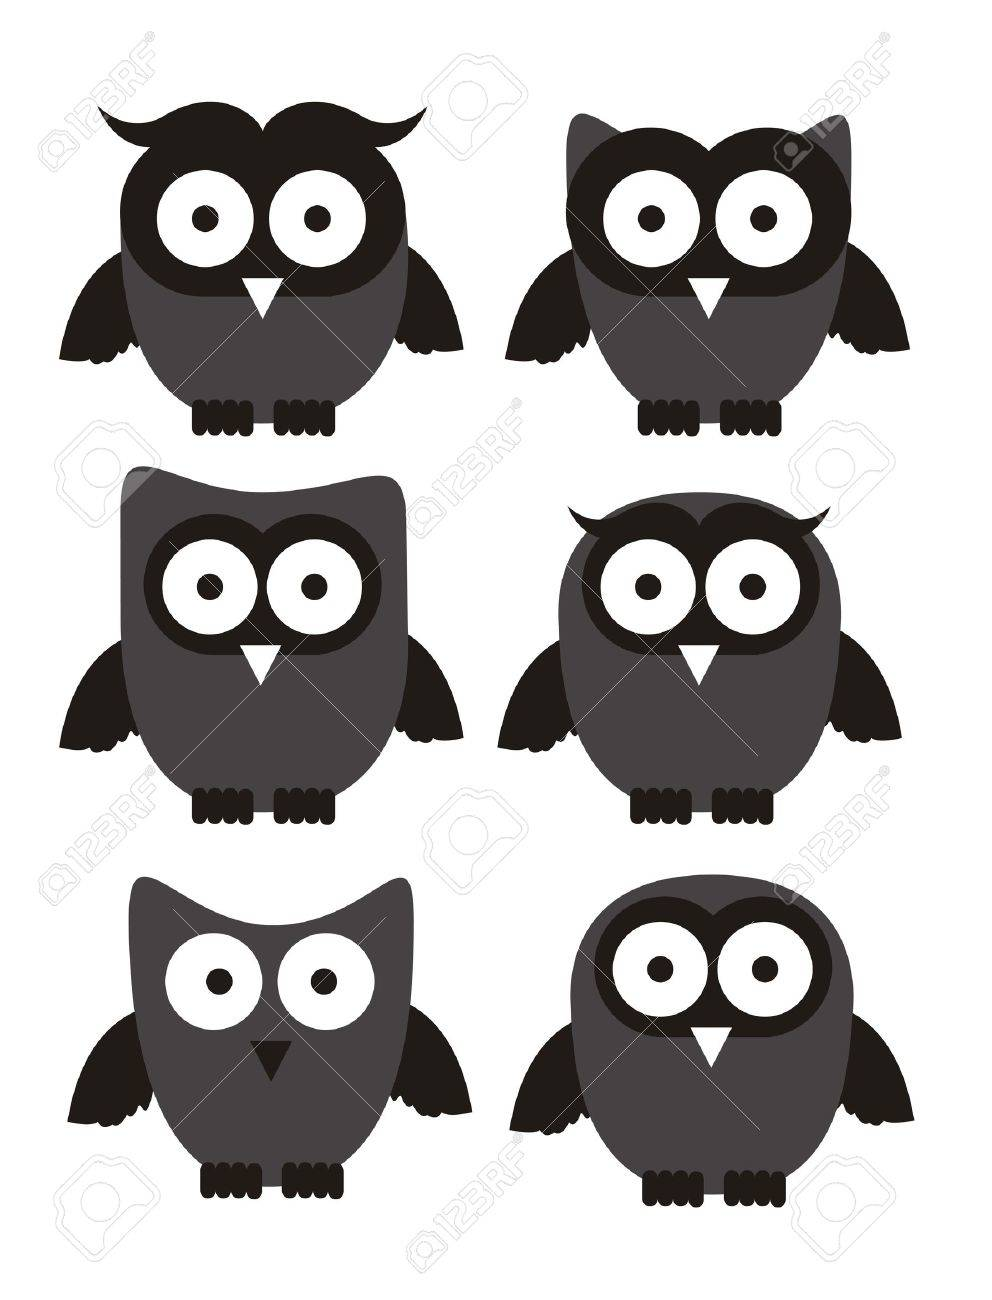 Illustration of birds icons, icons with animal silhouettes. vector illustration Stock Vector - 16126042